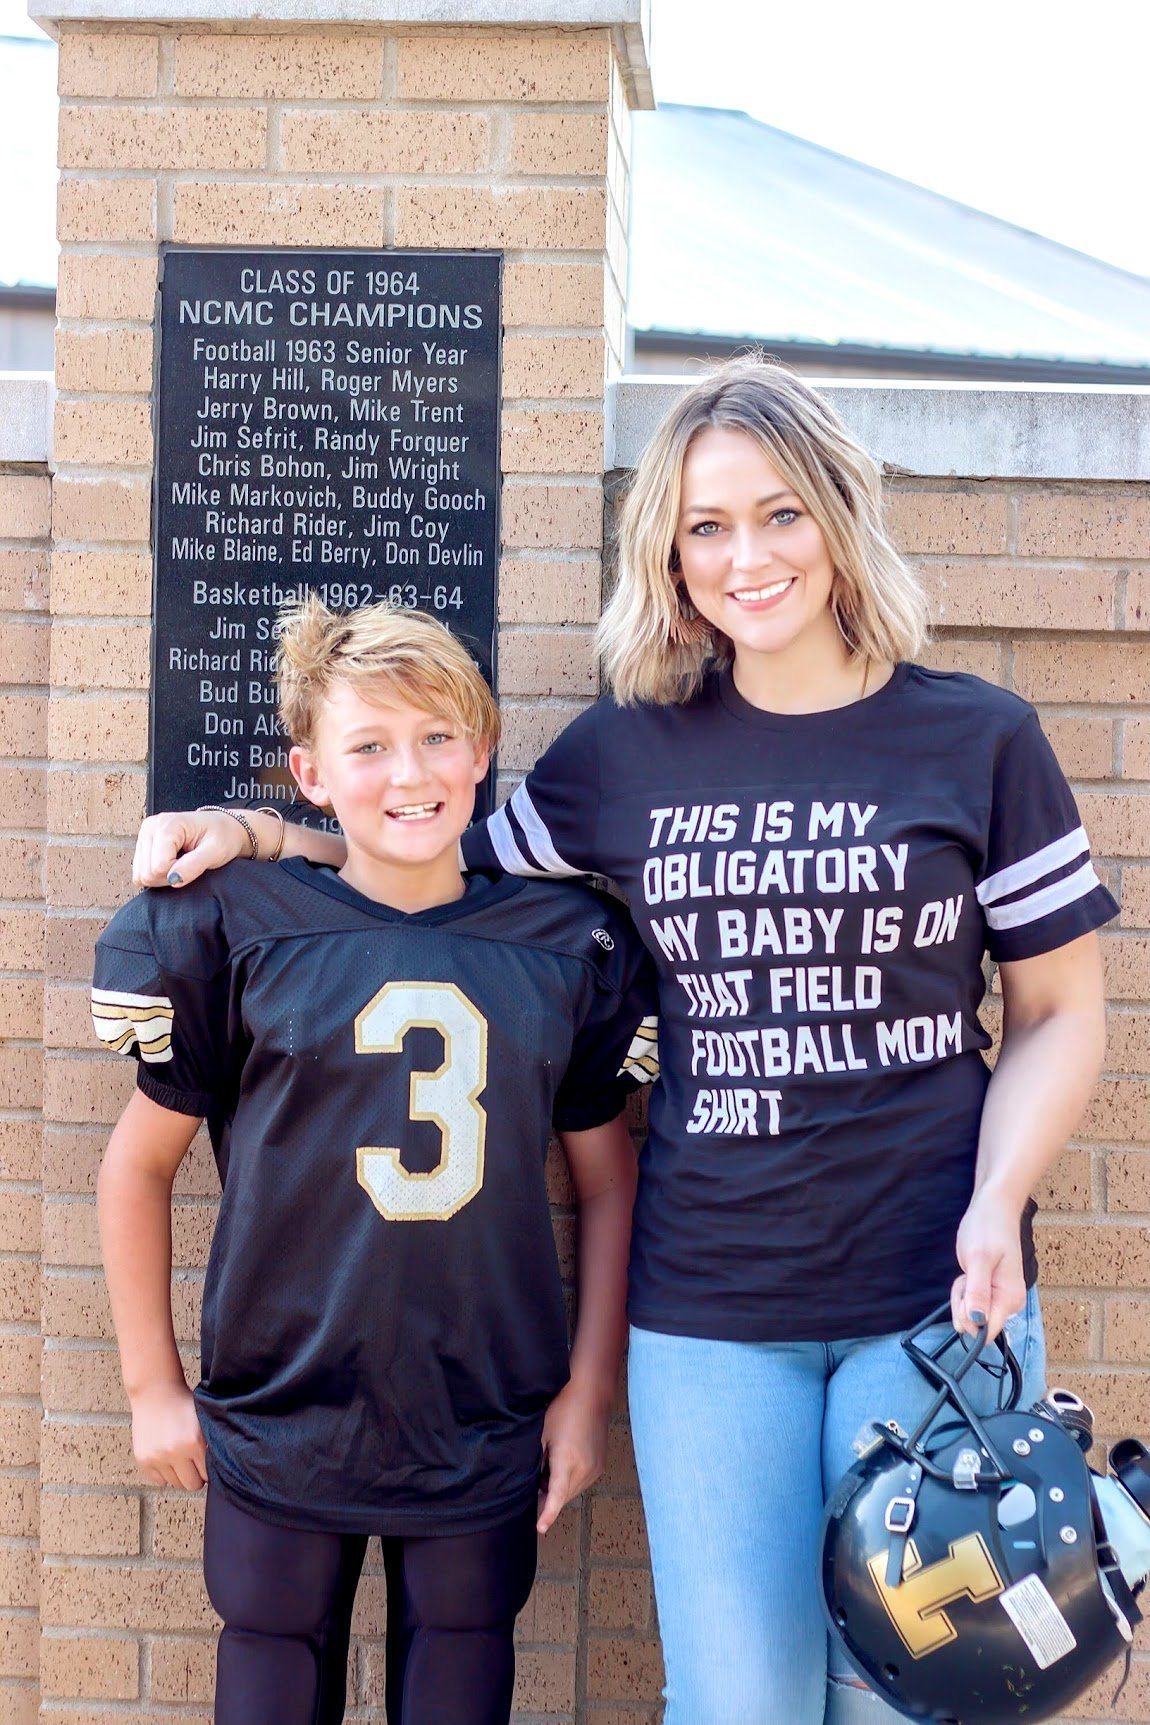 football mom shirt, football mom jersey, football mom